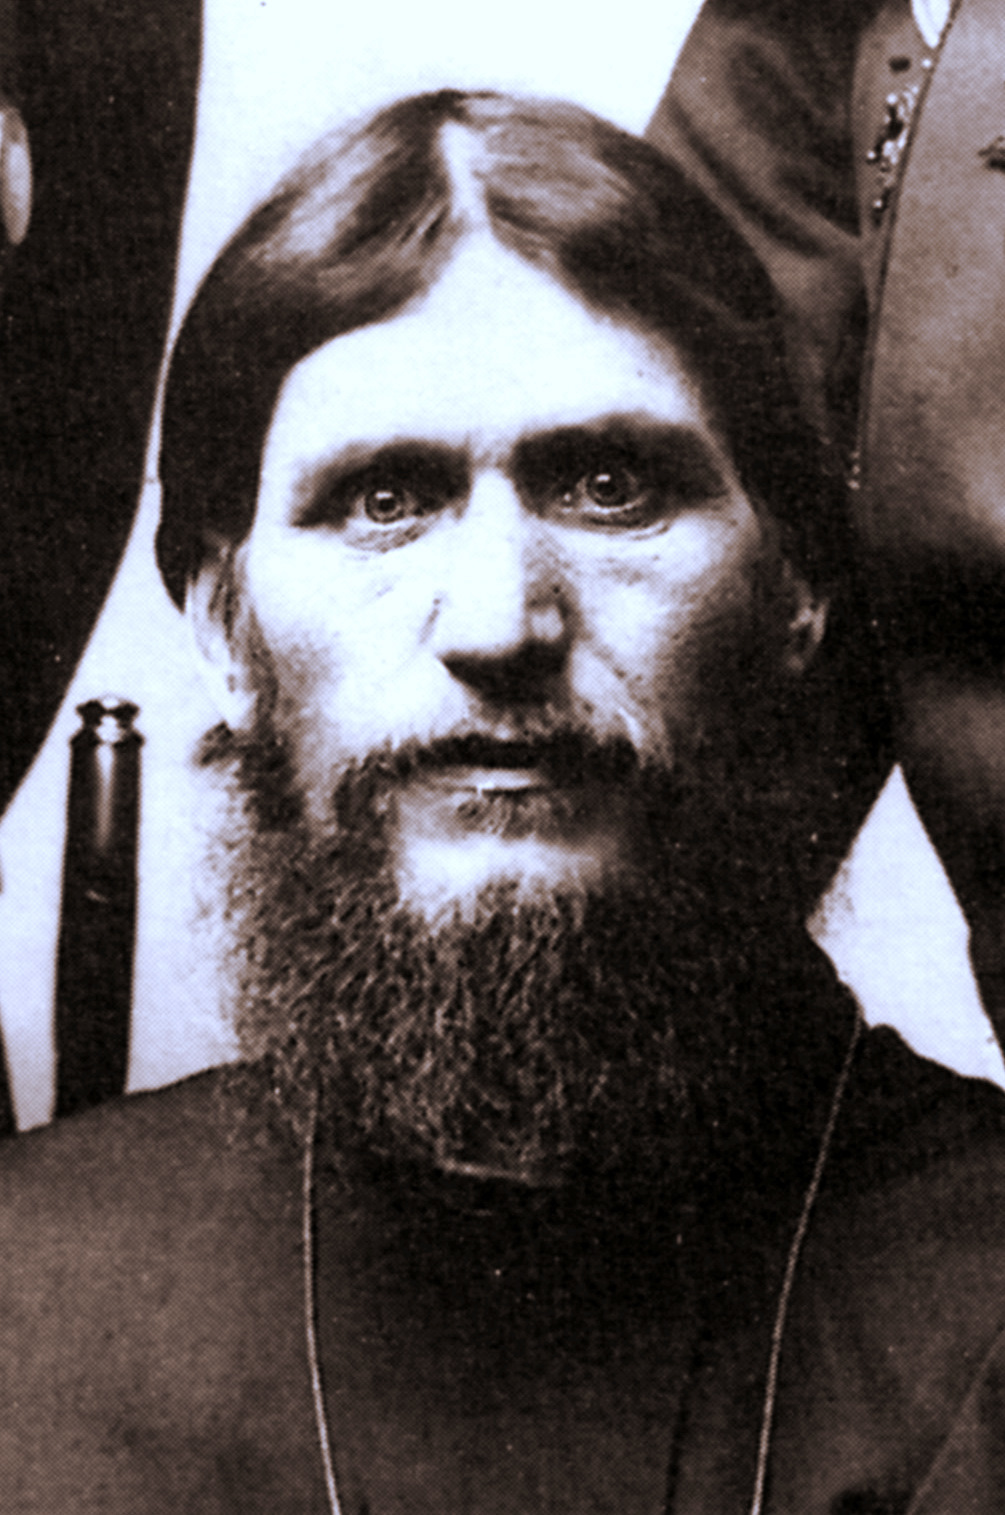 The beaming eyes of Rasputin in a photo taken in c. 1905.